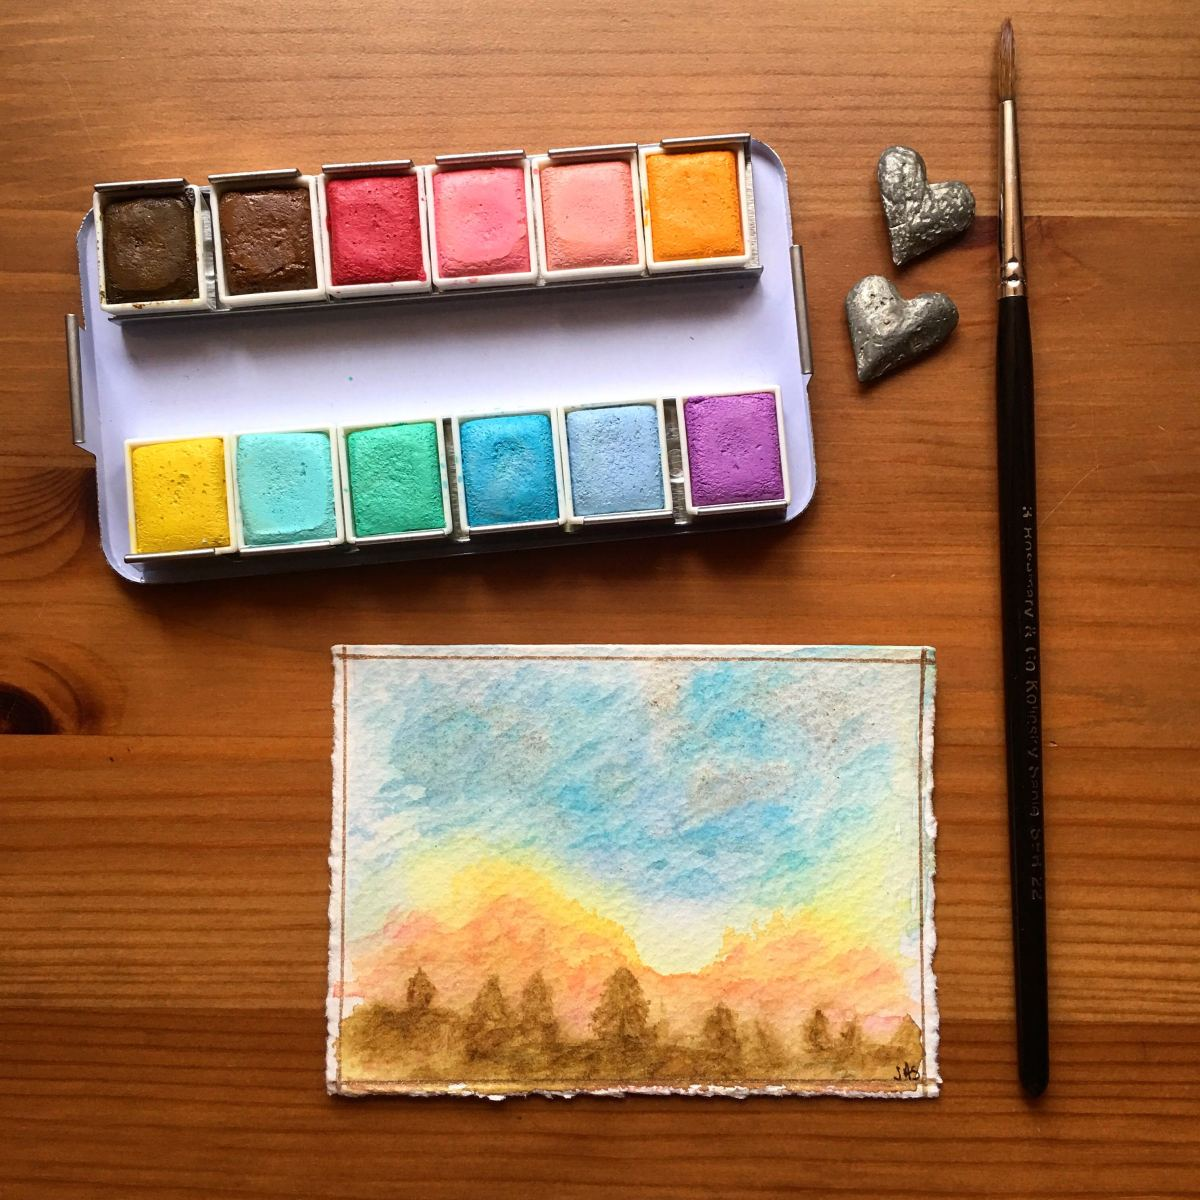 Prima Marketing watercolor confections pastel dreams and painting by jessica seacrest on fabriano artistico watercolor paper